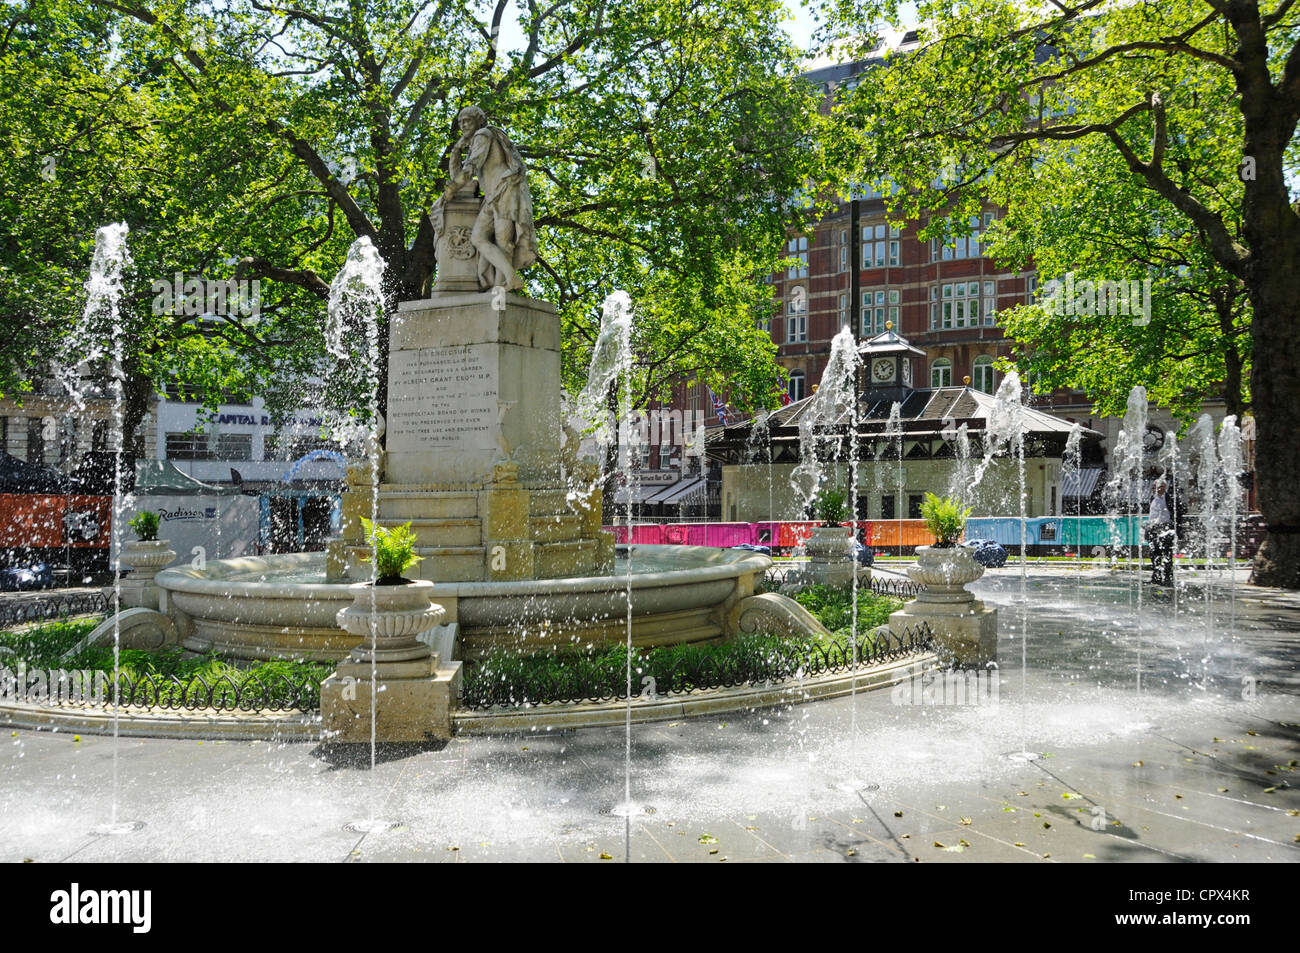 New fountains in the refurbished Leicester Square gardens - Stock Image